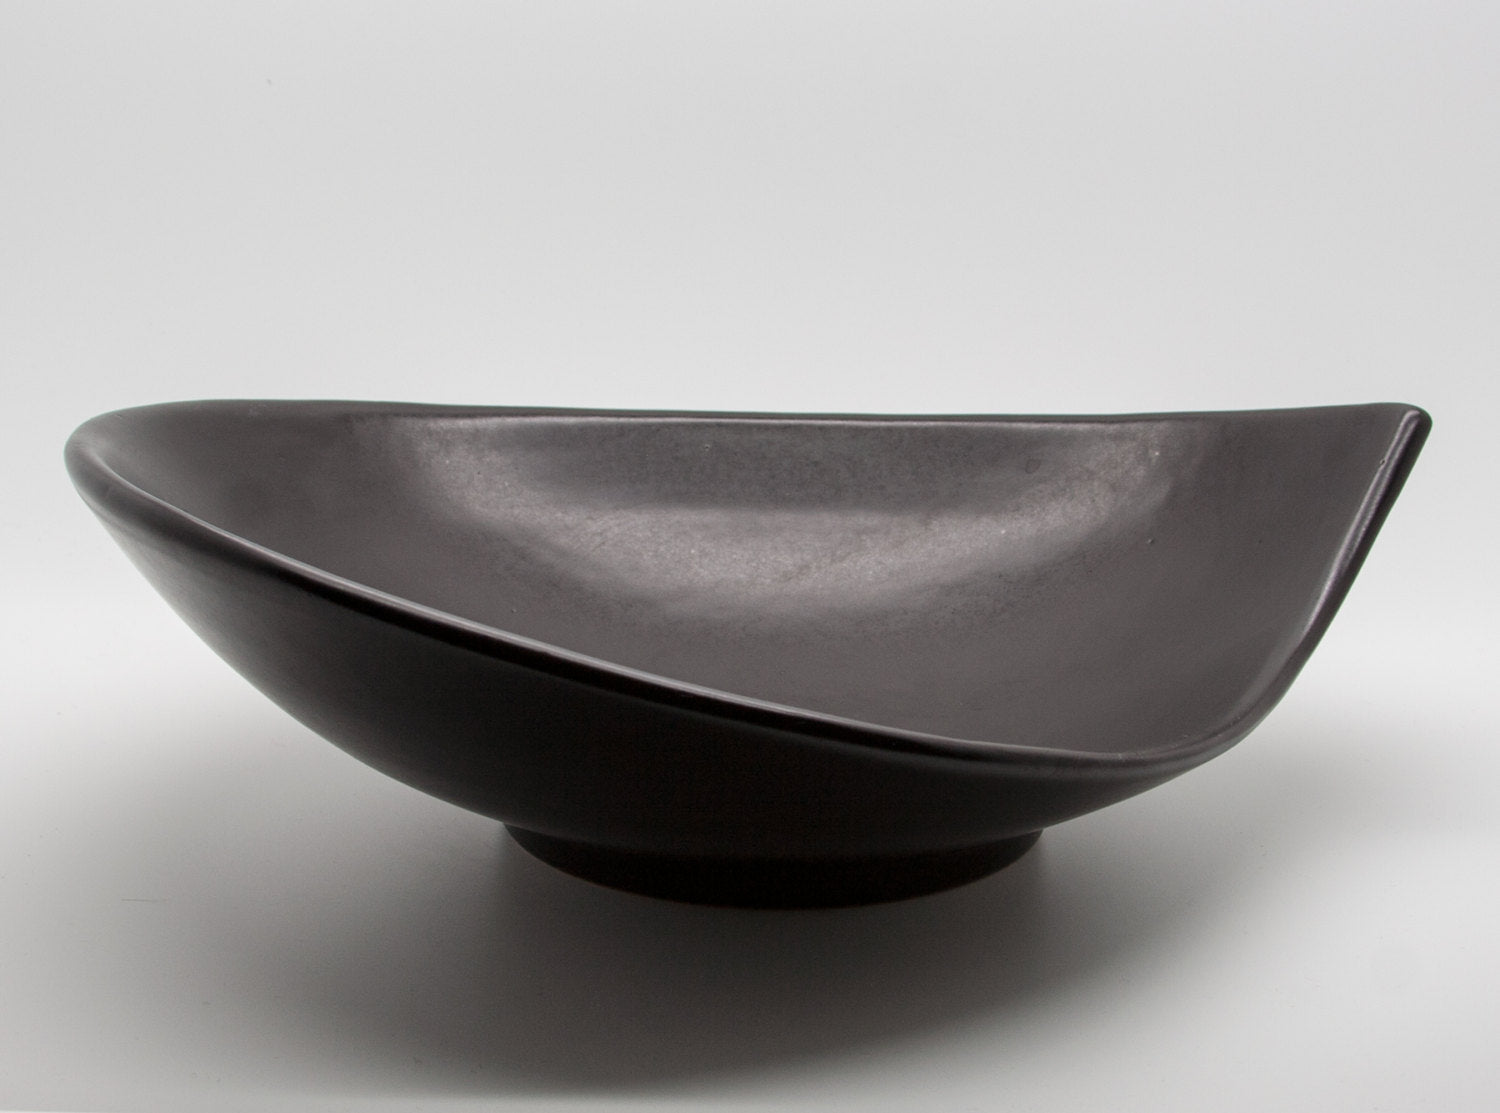 MØRKØV Black Glazed Ceramic Fruit Tray - Mollaris.com